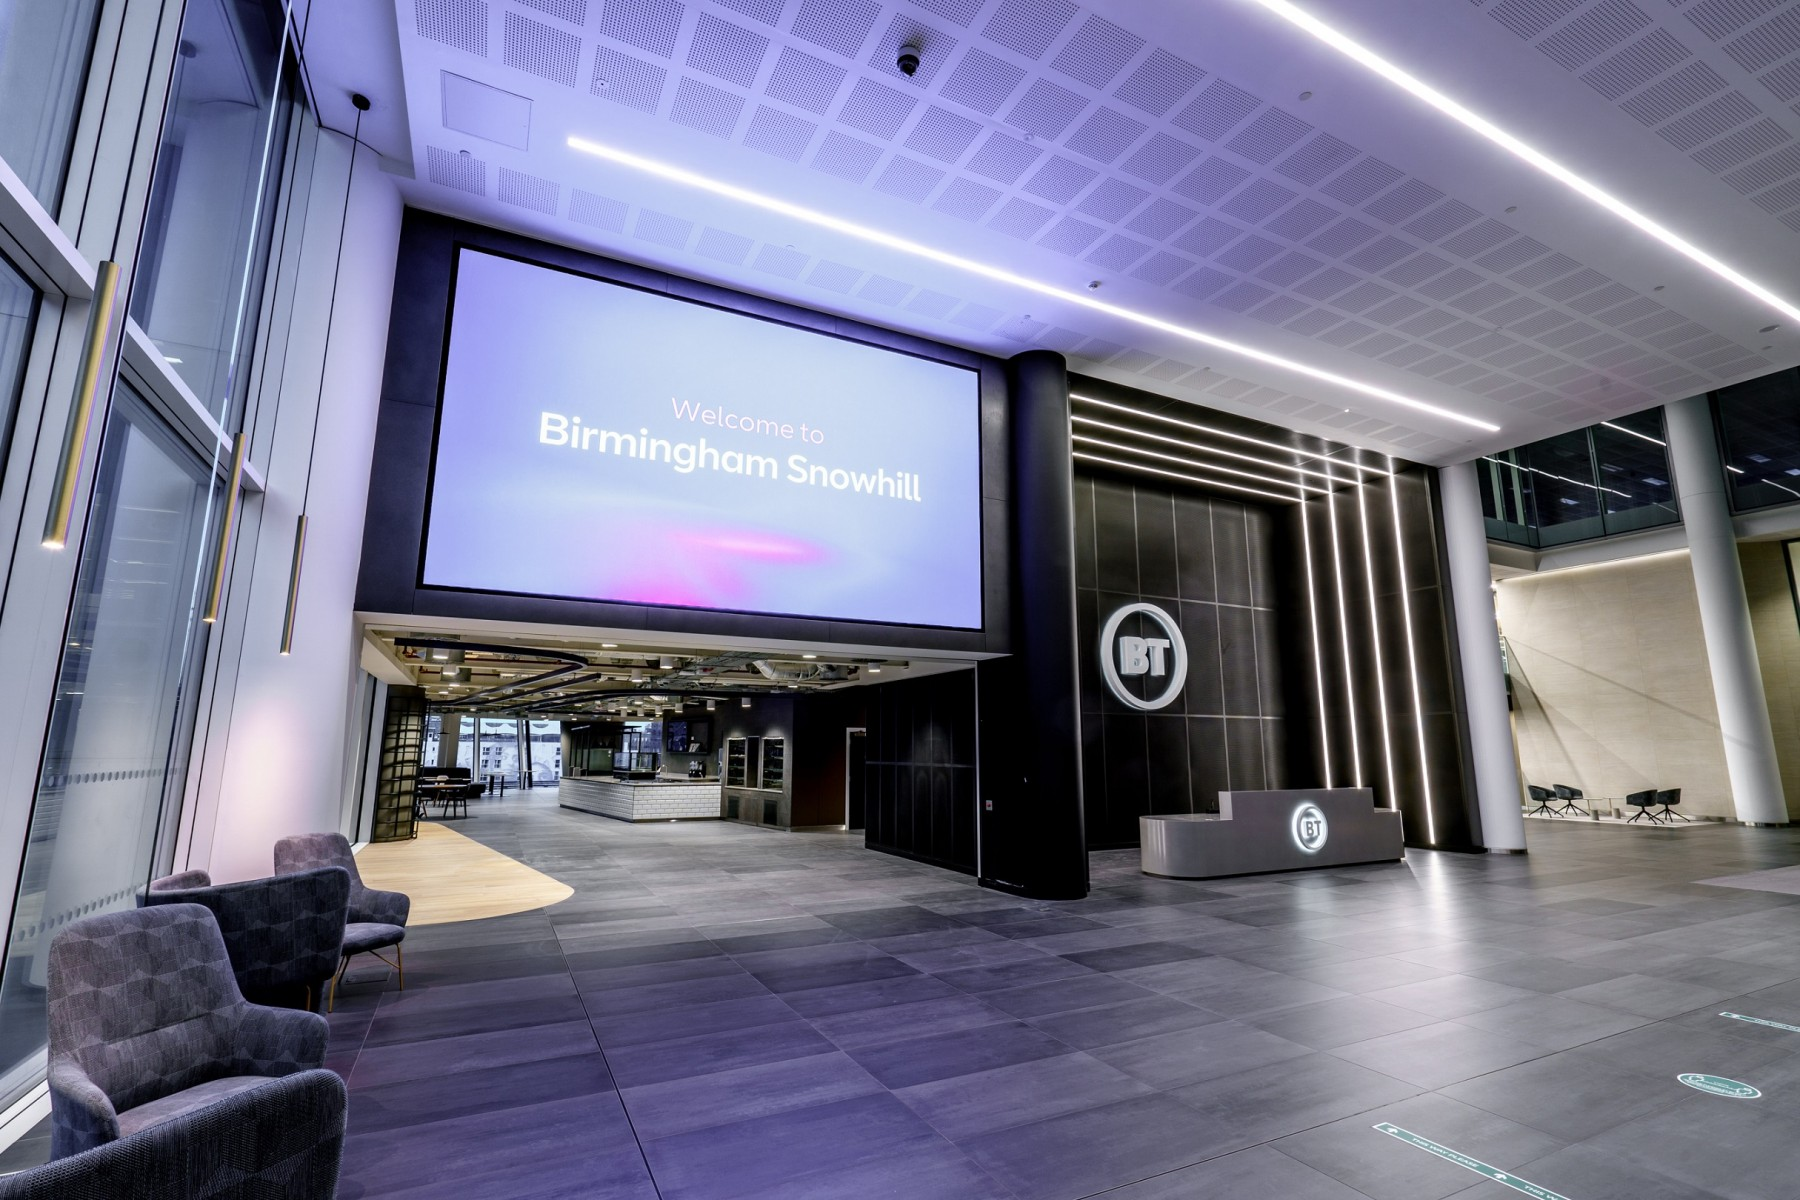 The BT reception area at Three Snowhill